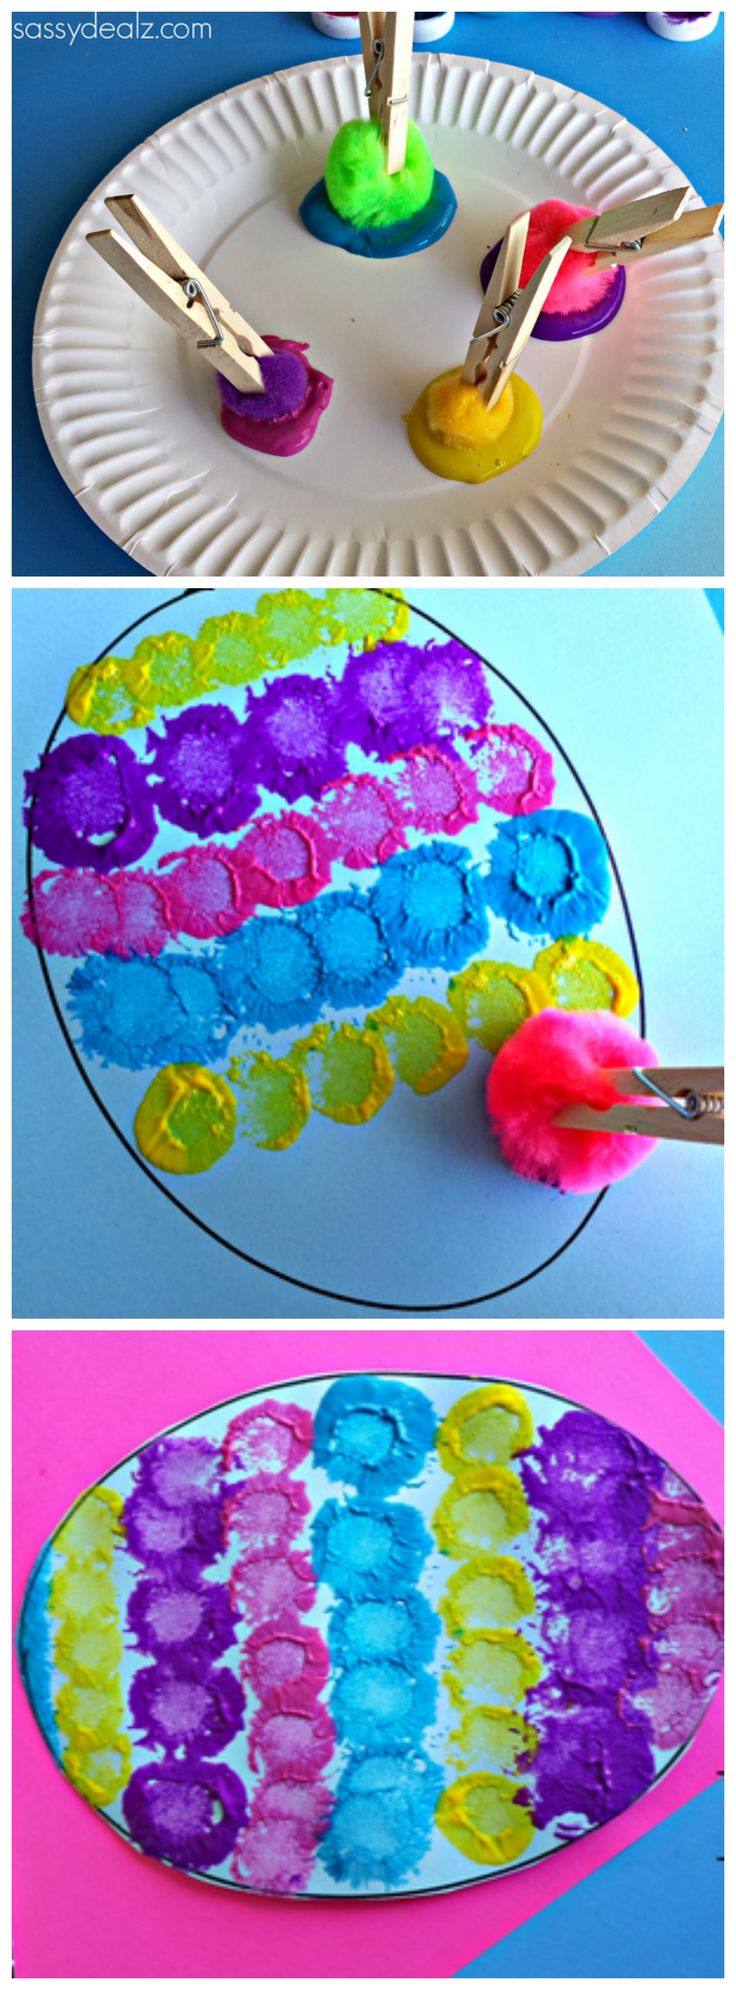 #DIY #Easter #Craft for #Kids using pom poms, clothespins, and paint!  www.kidsdinge.com           https://www.facebook.com/pages/kidsdingecom-Origineel-speelgoed-hebbedingen-voor-hippe-kids/160122710686387?sk=wall       http://instagram.com/kidsdinge